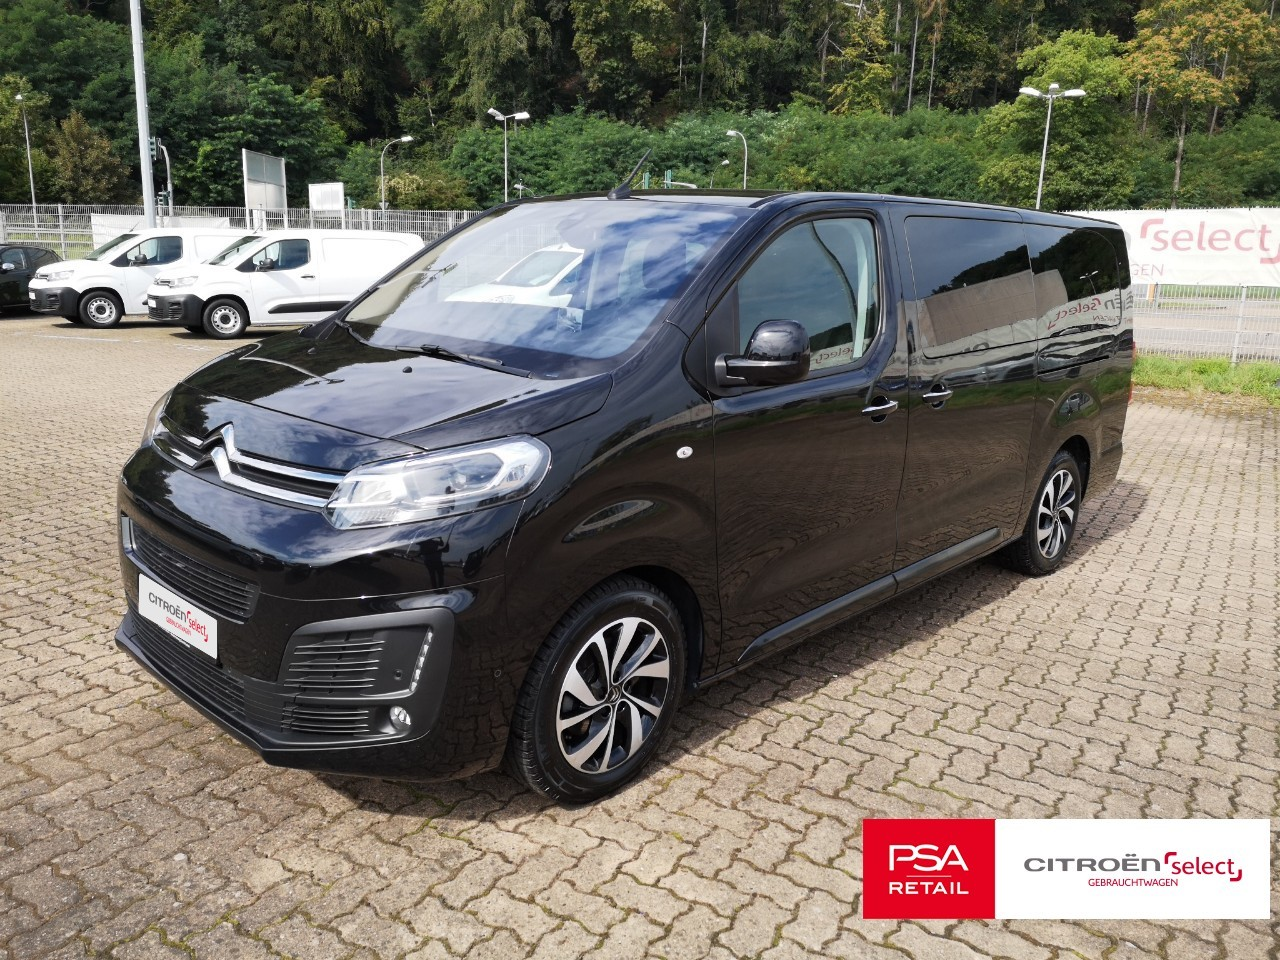 Citroën Spacetourer Shine XL 2.0BlueHDi180PS EAT8 7-Sitzer